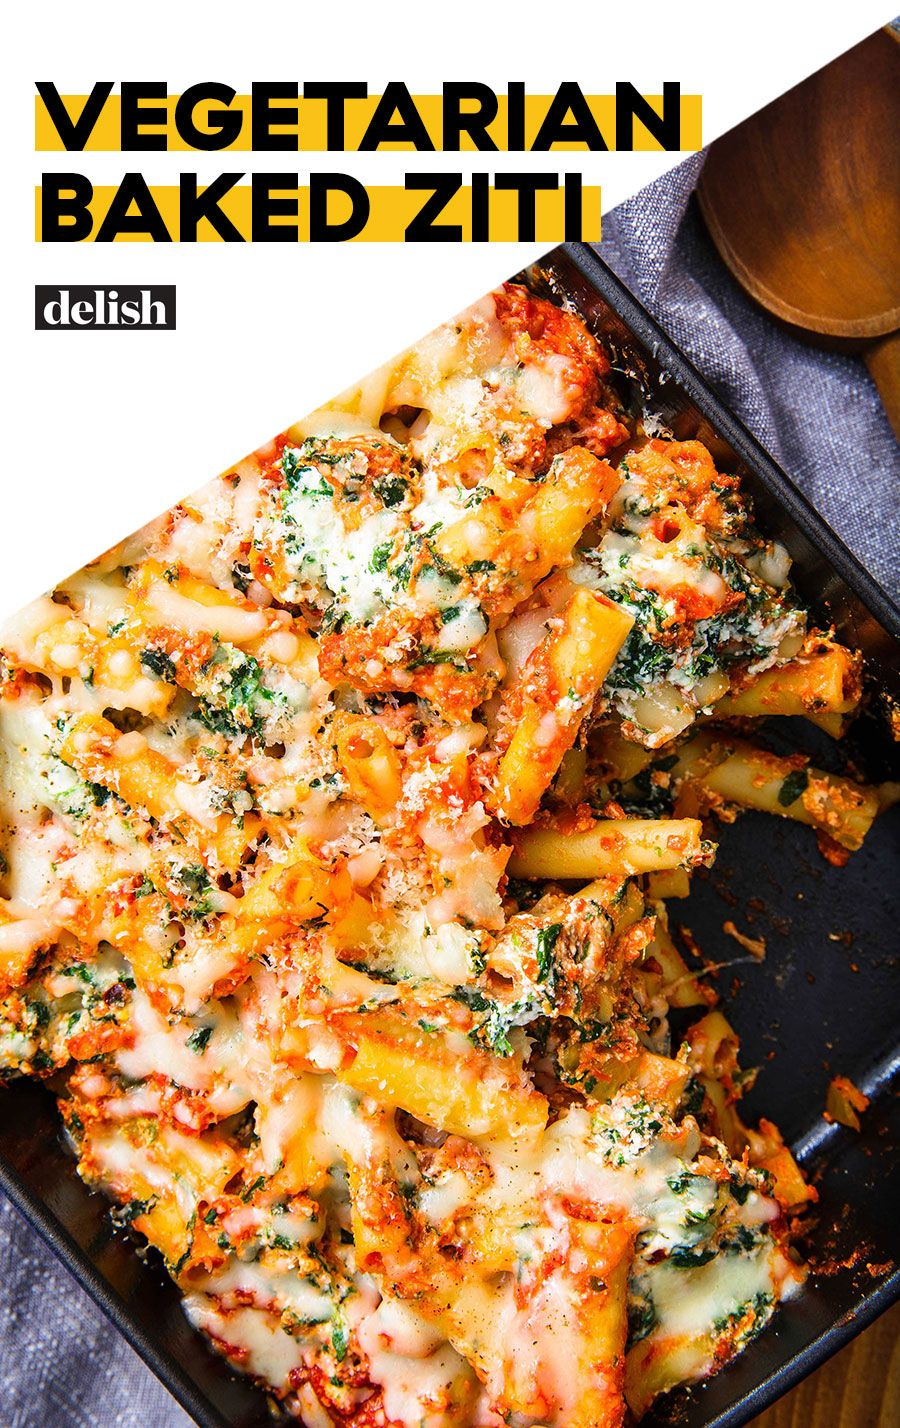 Treat Yourself To This Super Comforting Vegetarian Baked Ziti